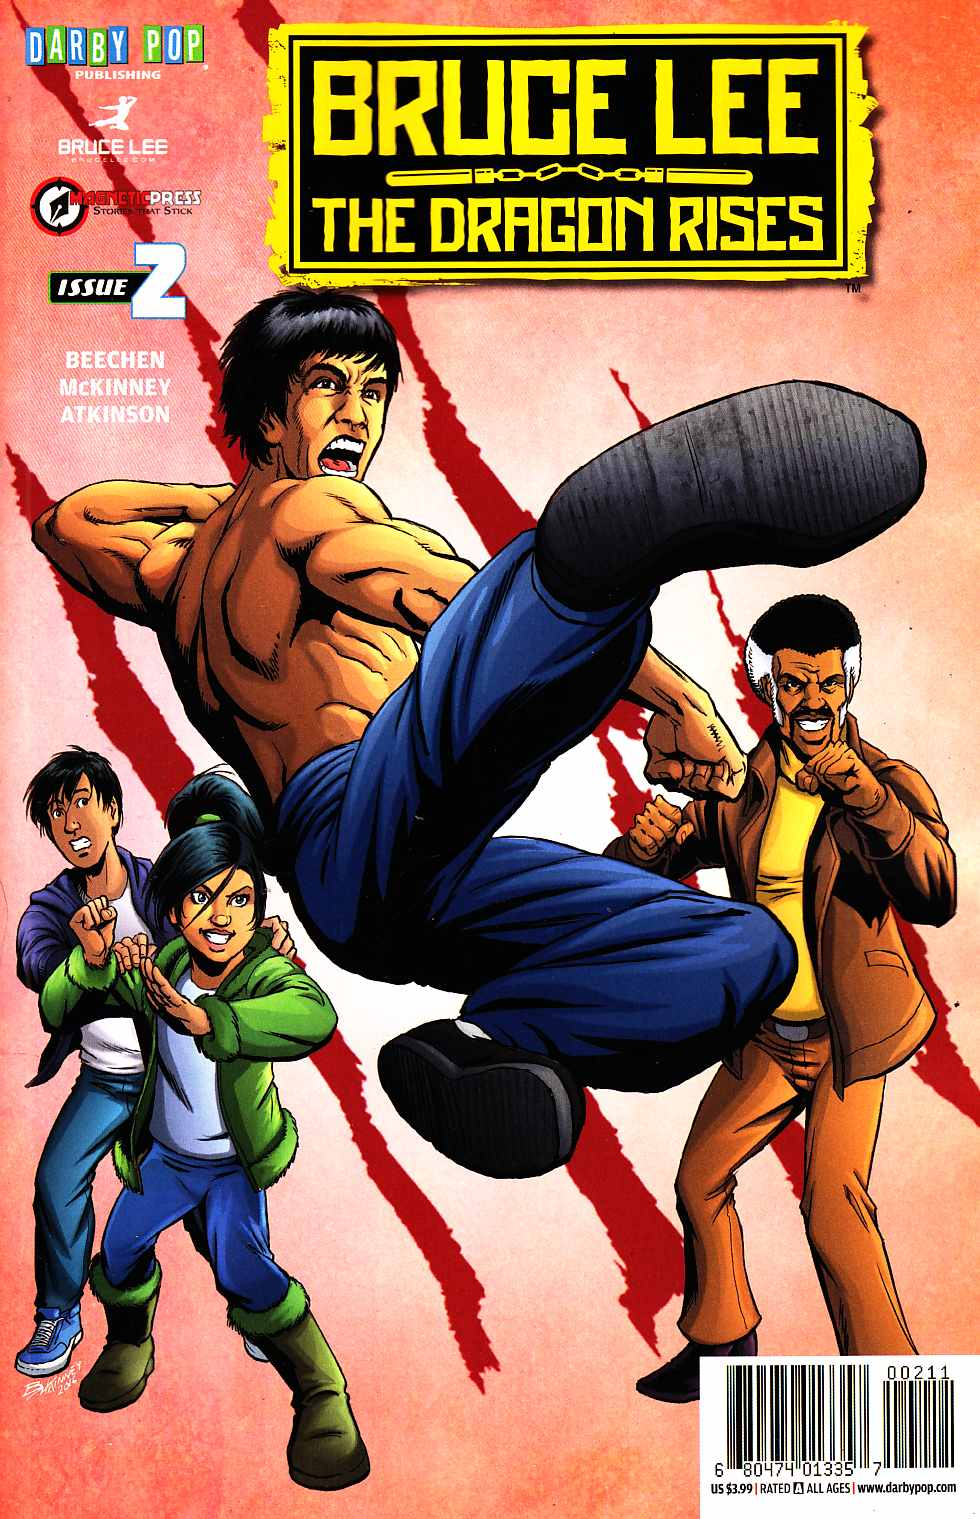 Bruce Lee Dragon Rises #2 Cover A [Darby Pop Comic]